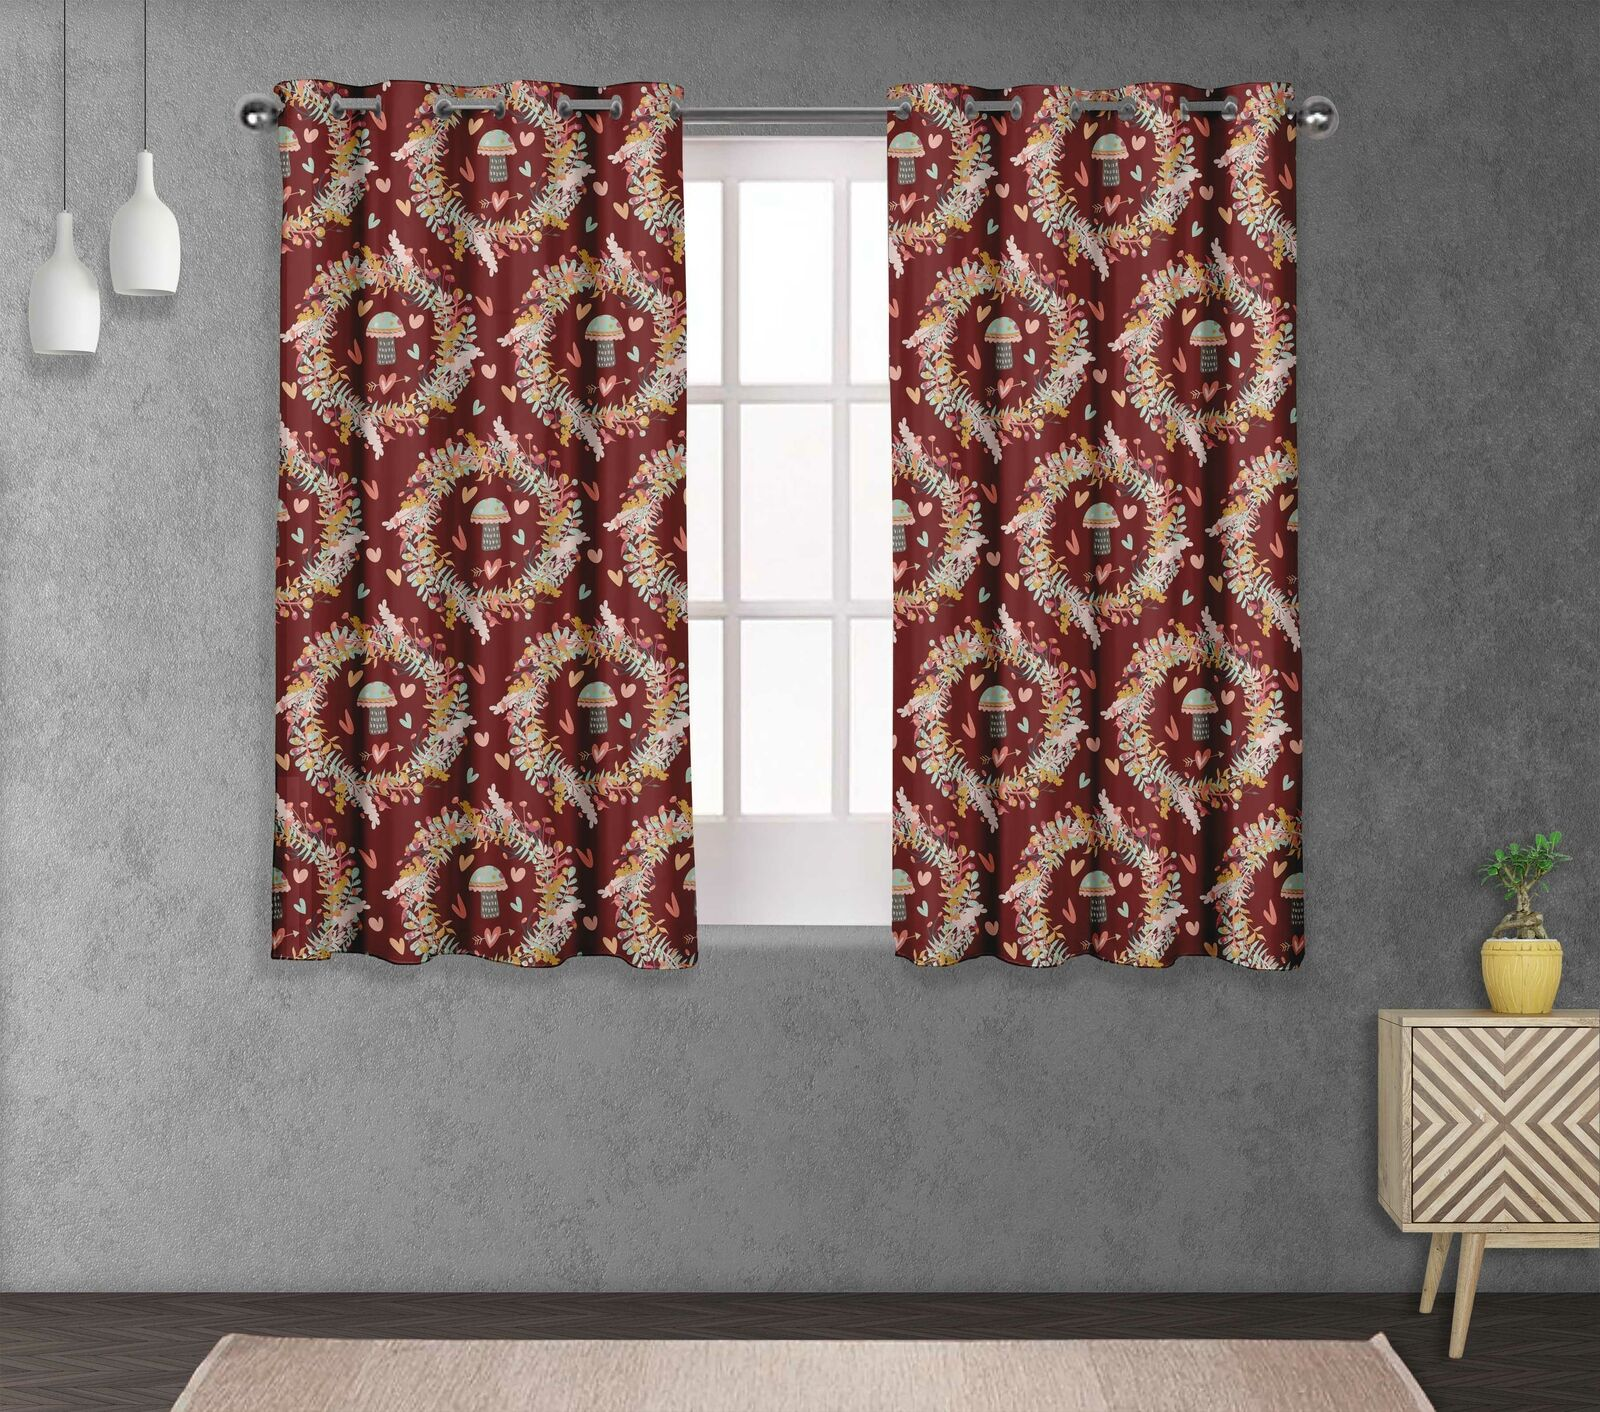 S4sassy Mushroom & Wreath Living Room Eyelet Curtain Drapers -FL-844D